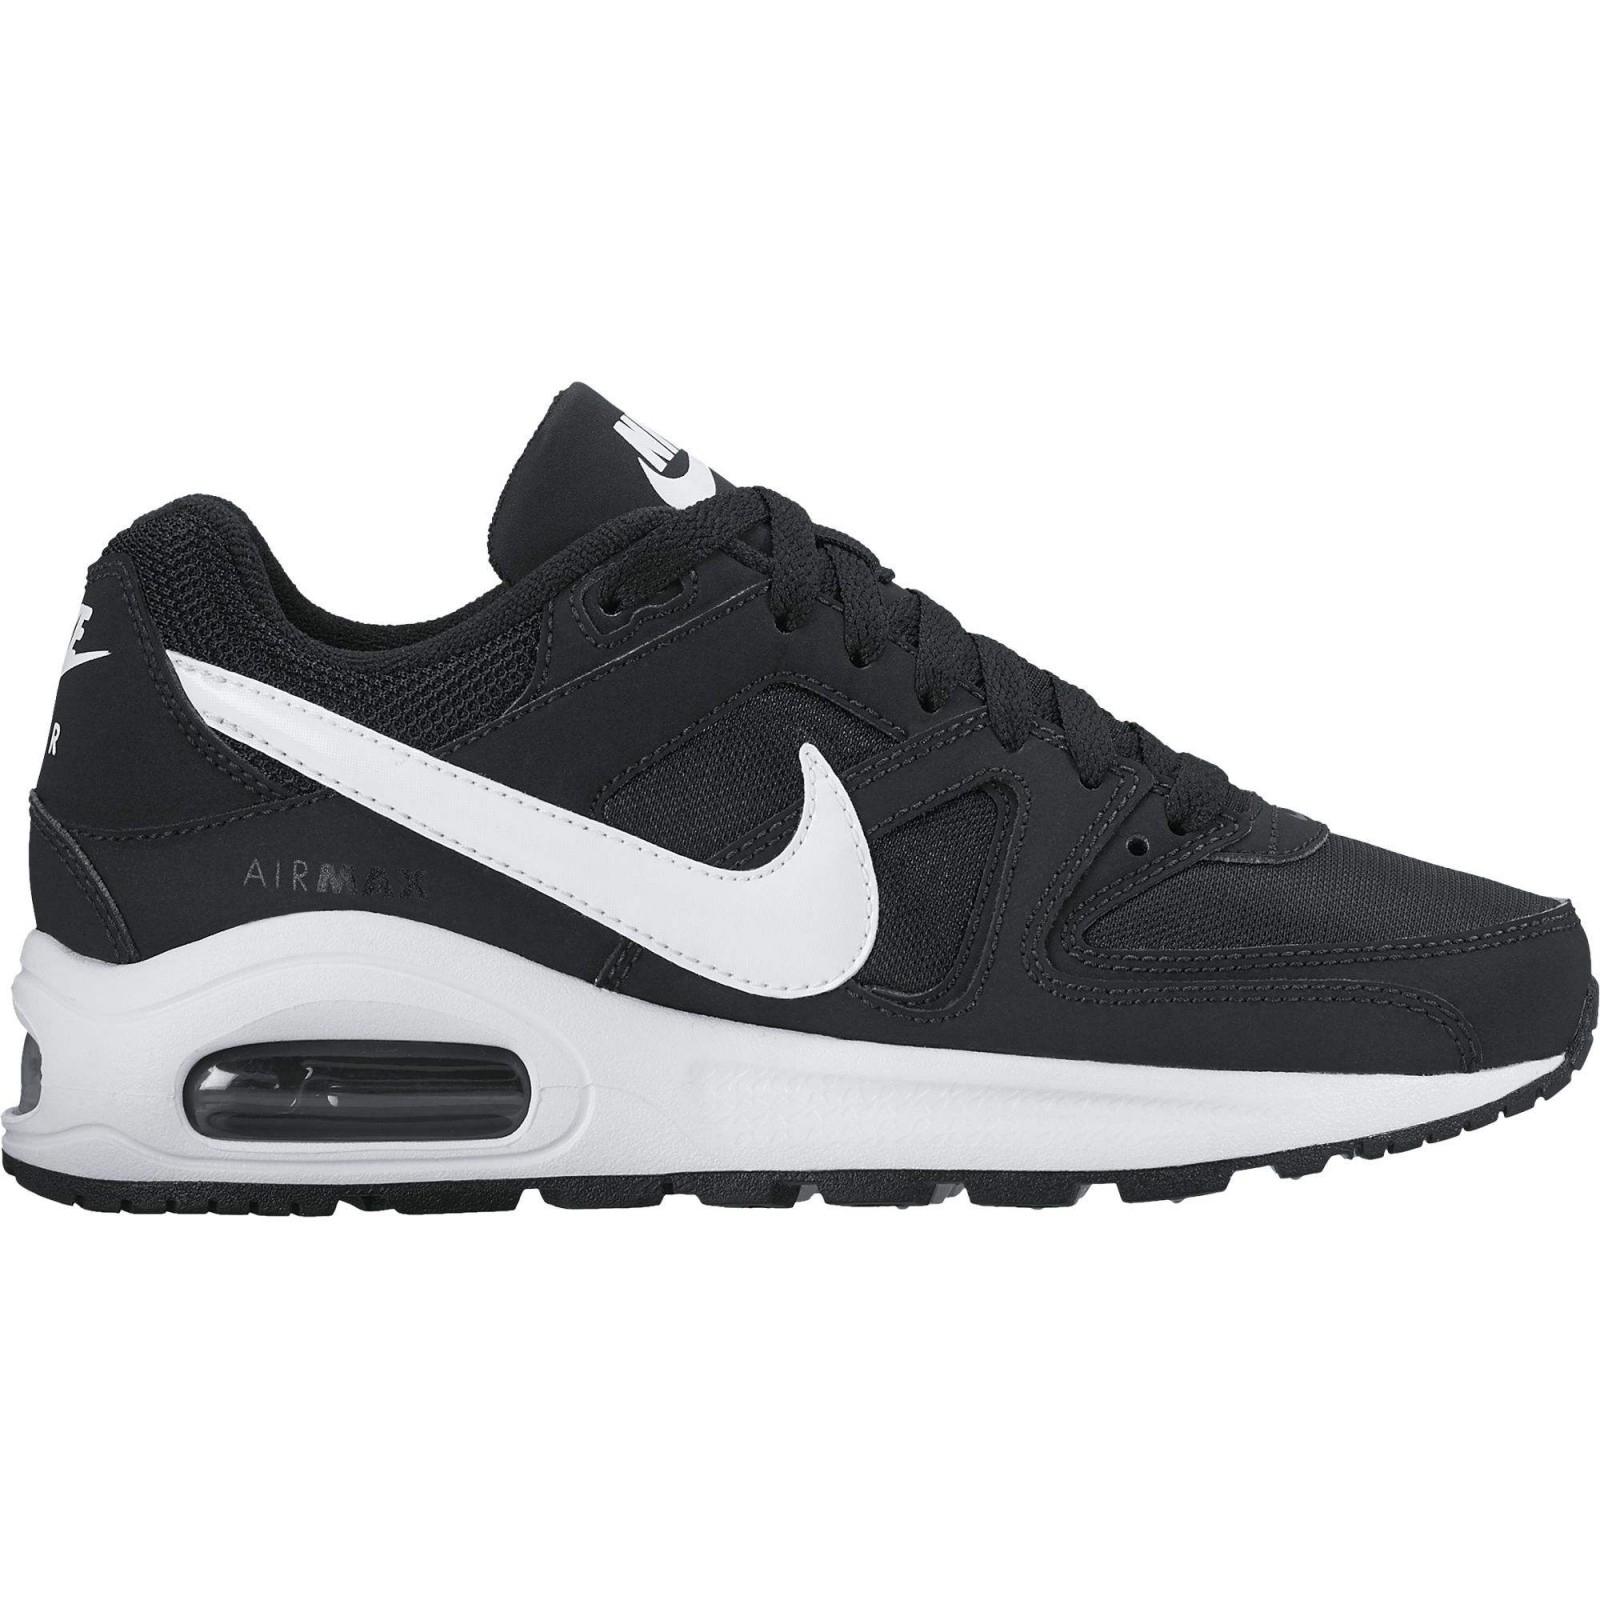 on sale 52b10 62aca Dětské tenisky Nike AIR MAX COMMAND FLEX (GS) BLACK WHITE-WHITE ...